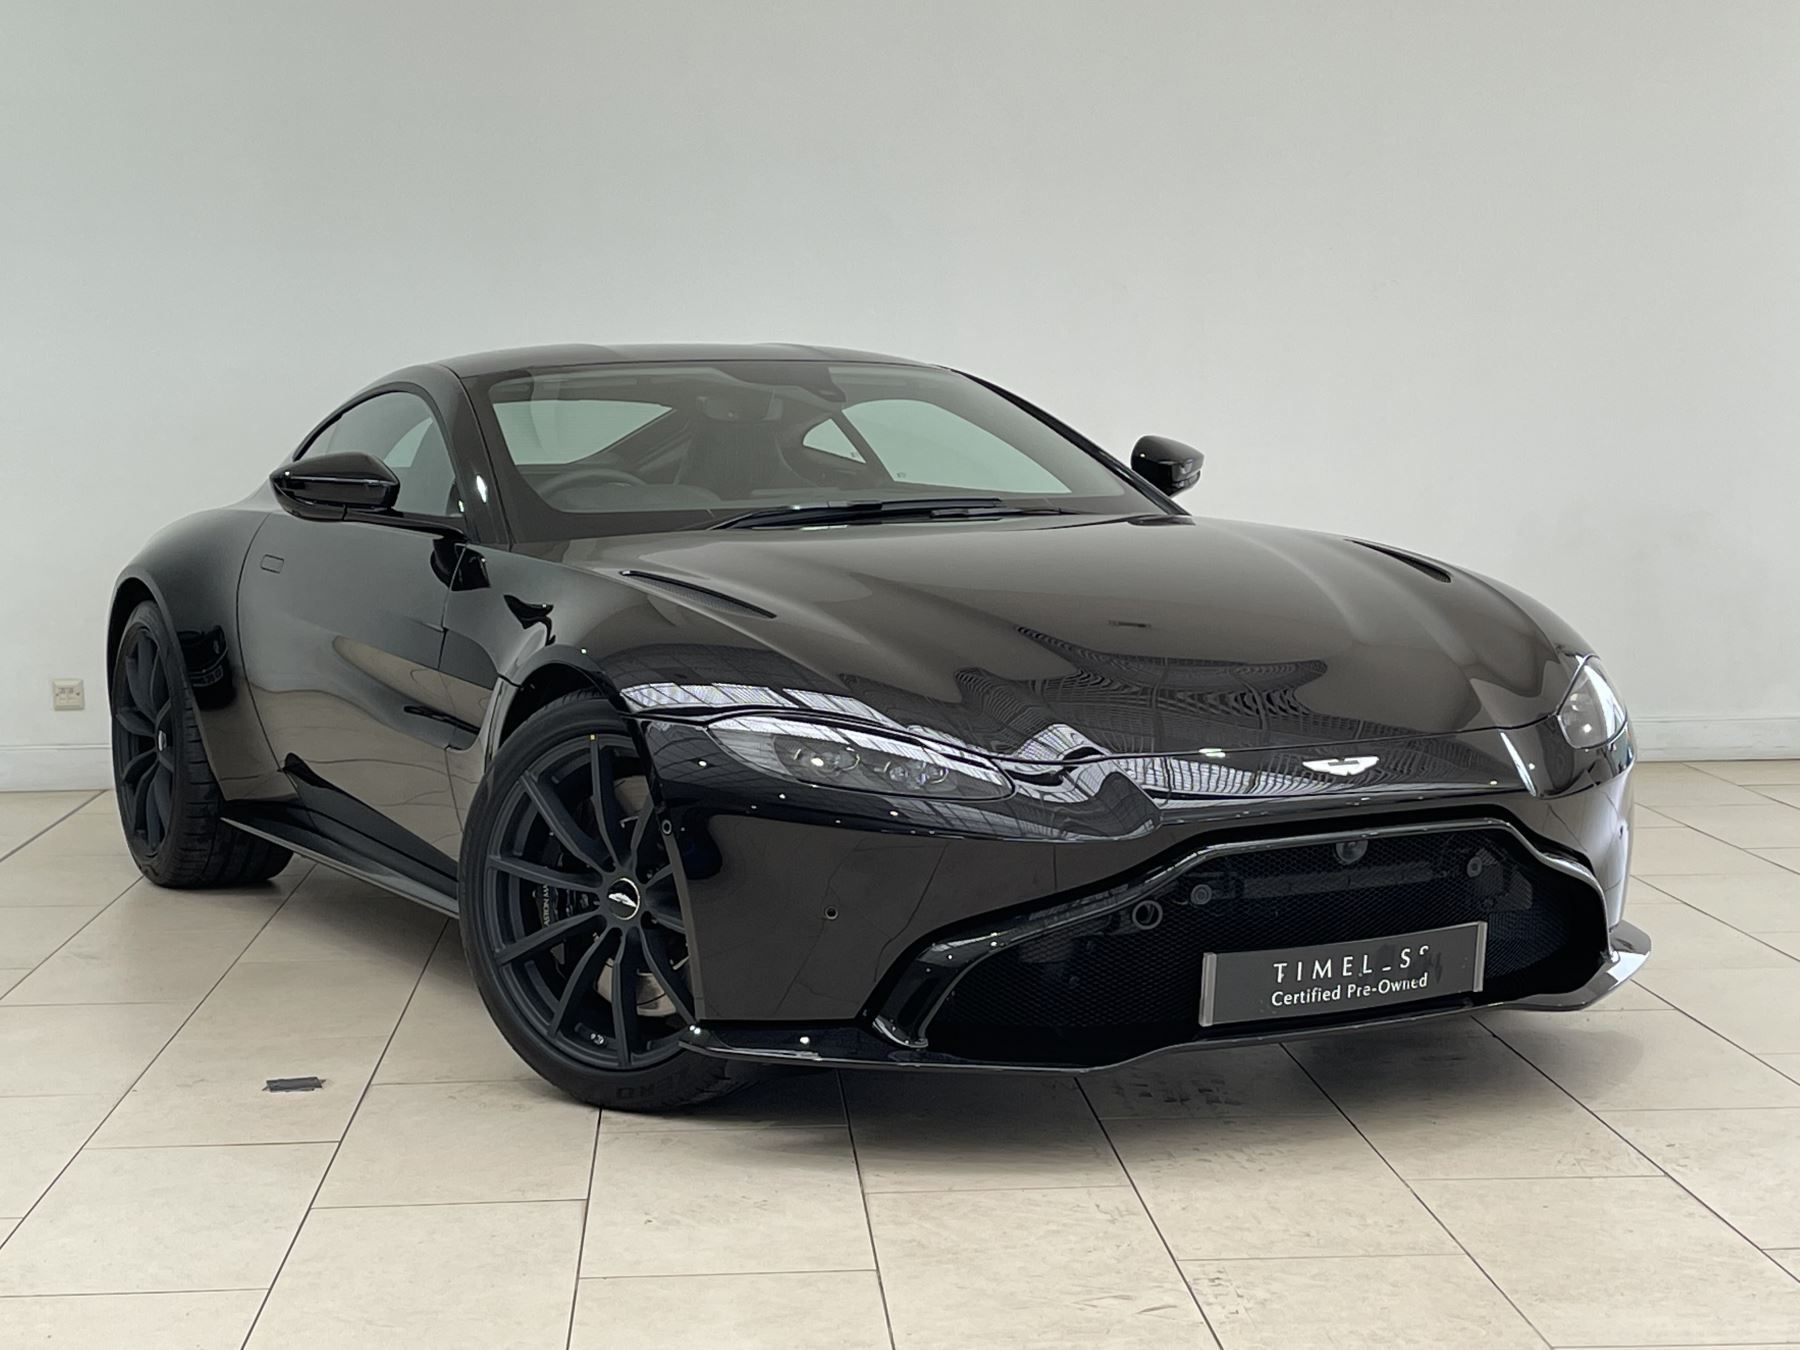 Aston Martin New Vantage 2dr ZF 8 Speed Auto 4.0 Automatic 3 door Coupe (2021)